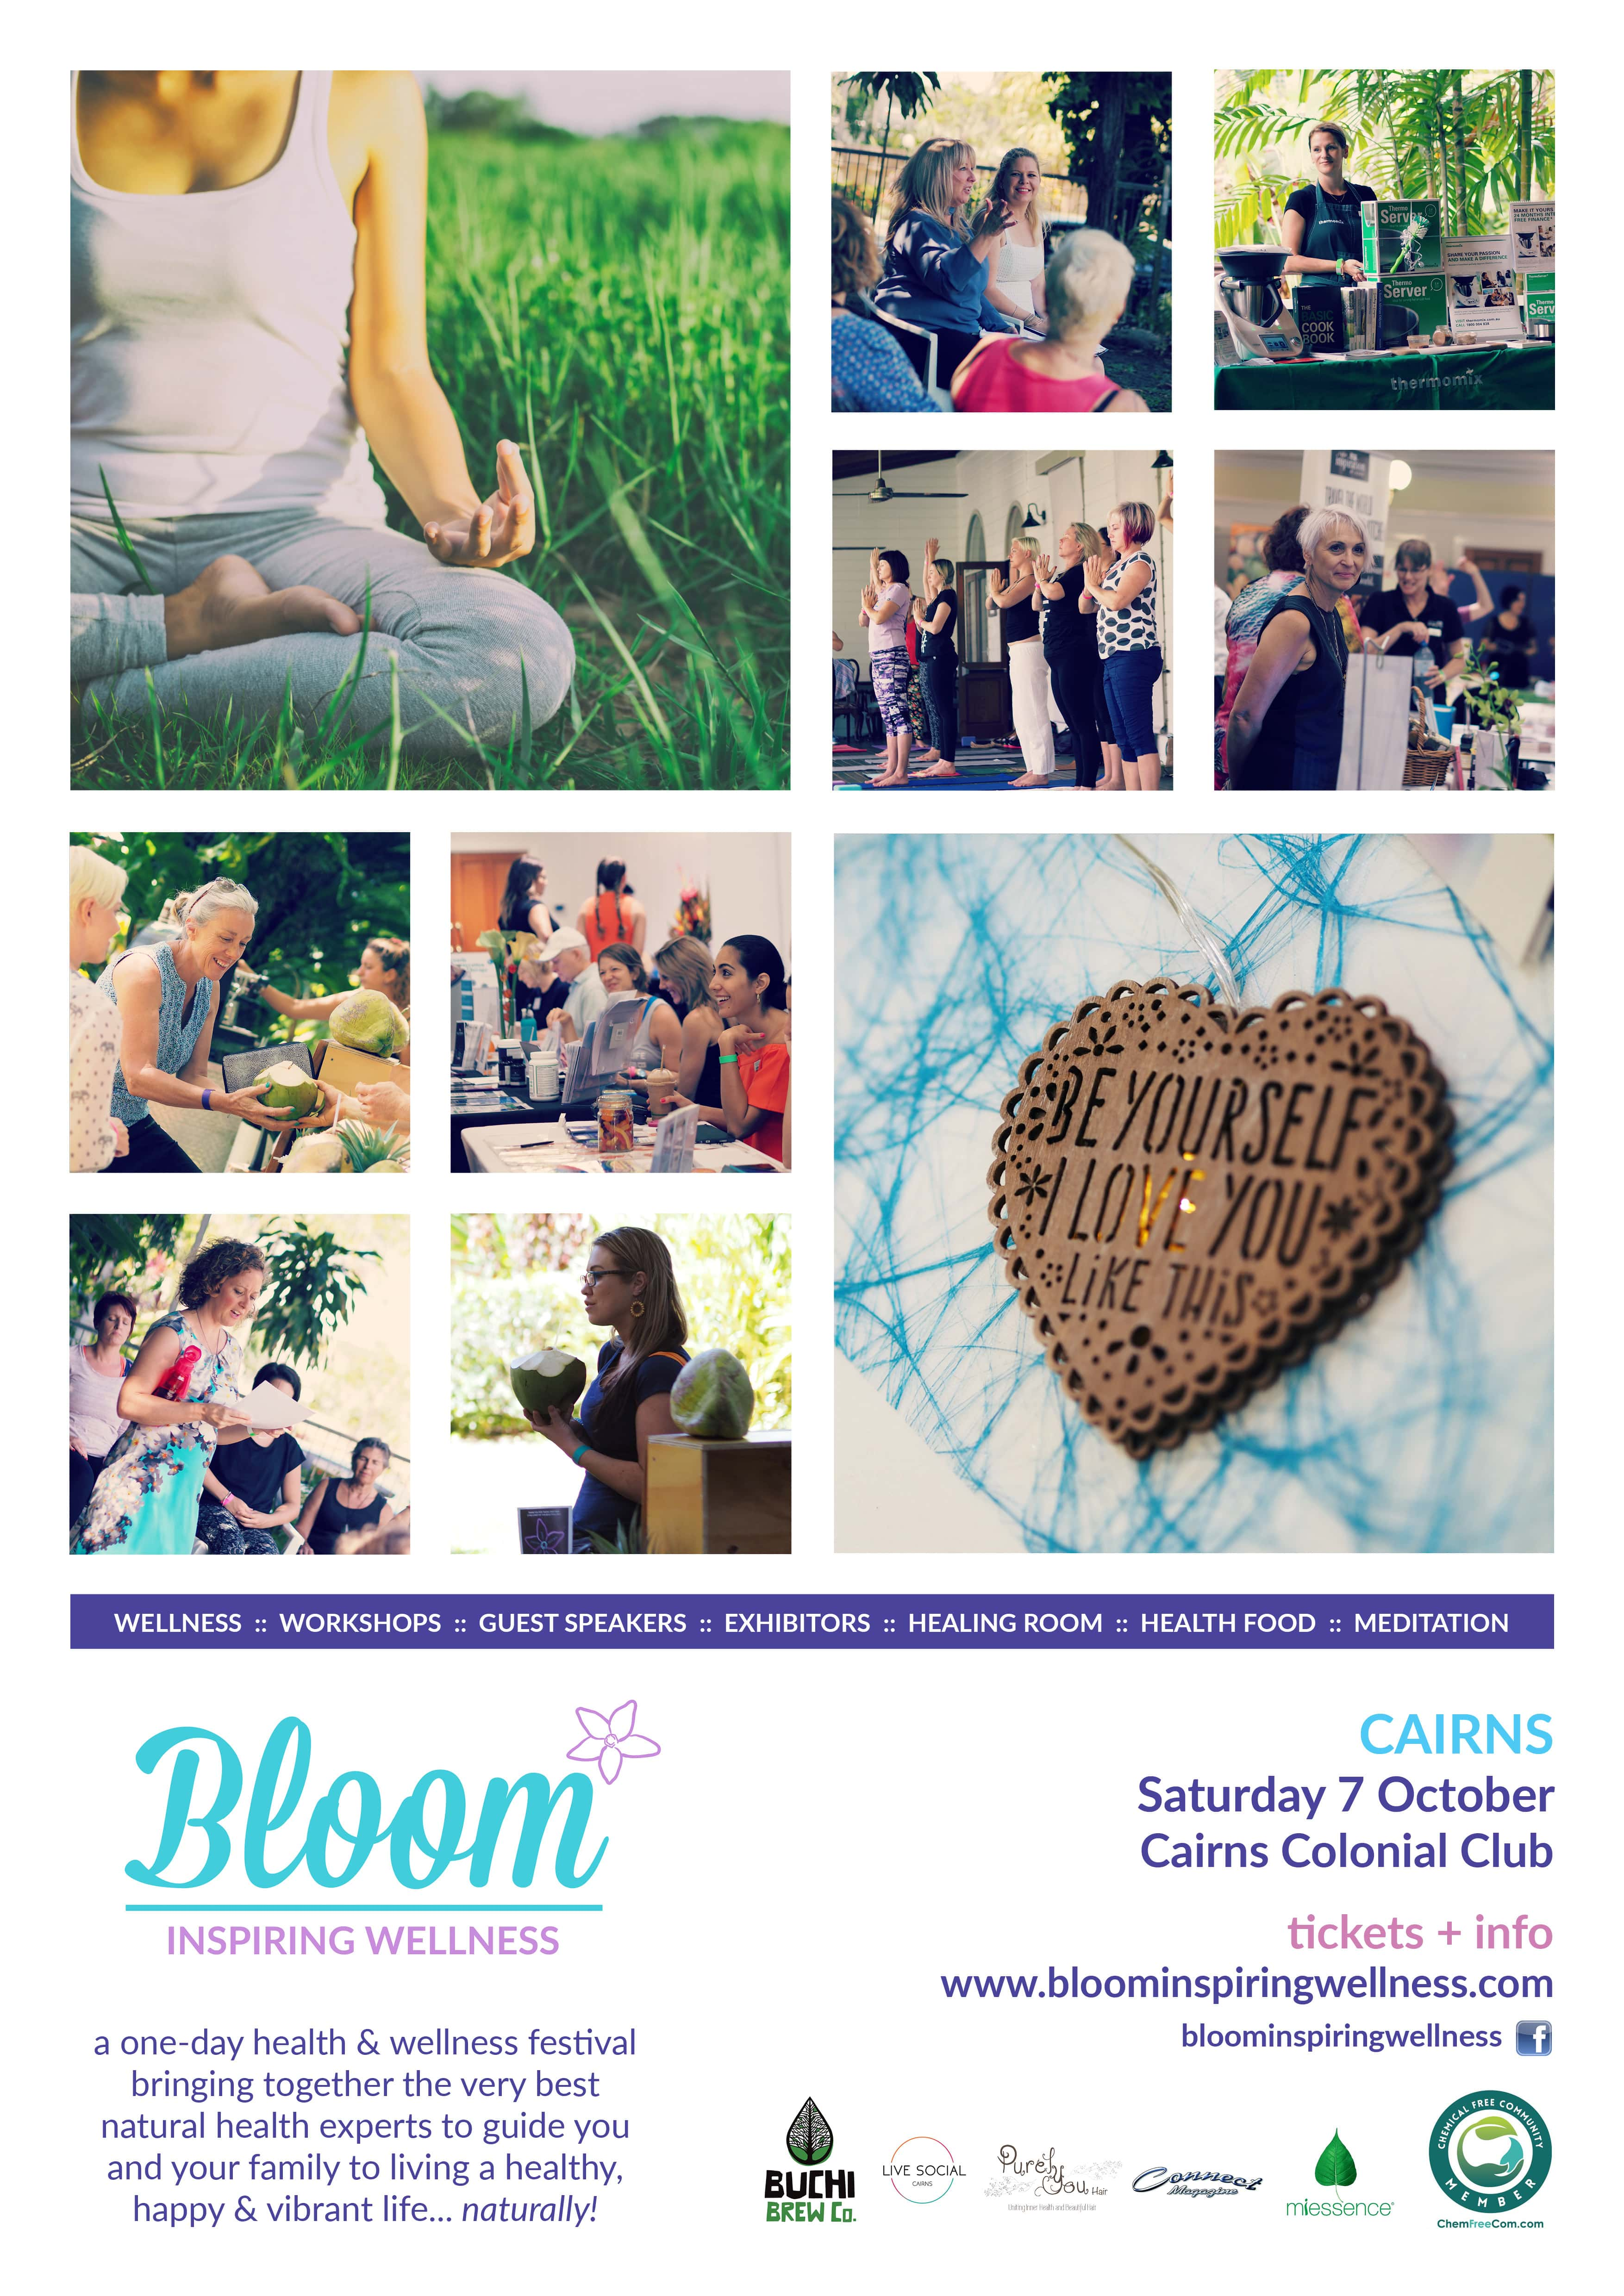 Bloom Inspiring Wellness 2017